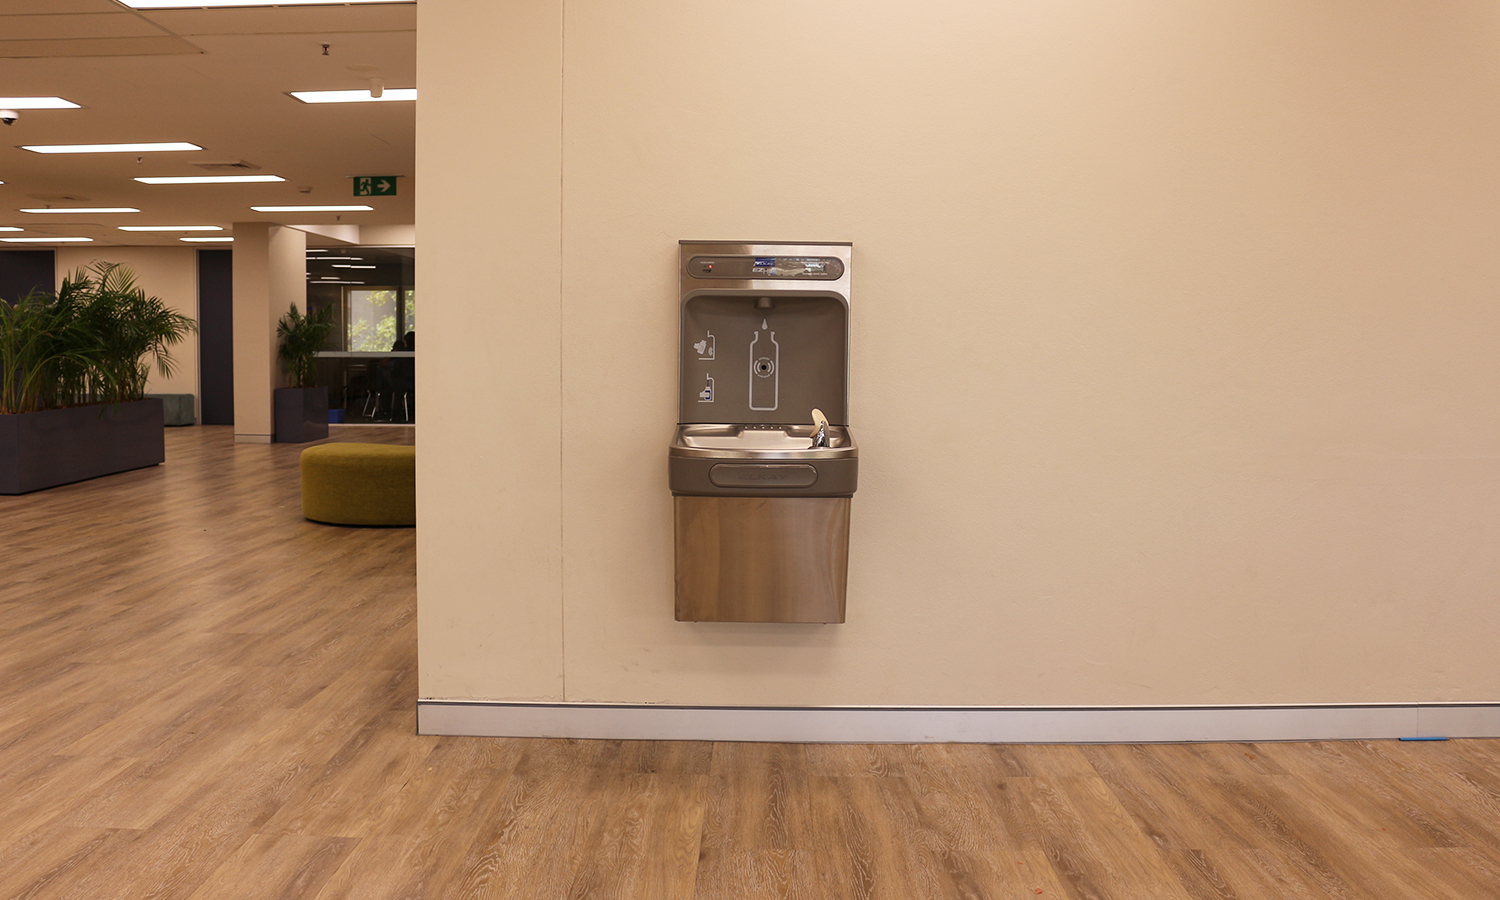 St Andrew's Cathedral School installs CIVIQ's drinking water station